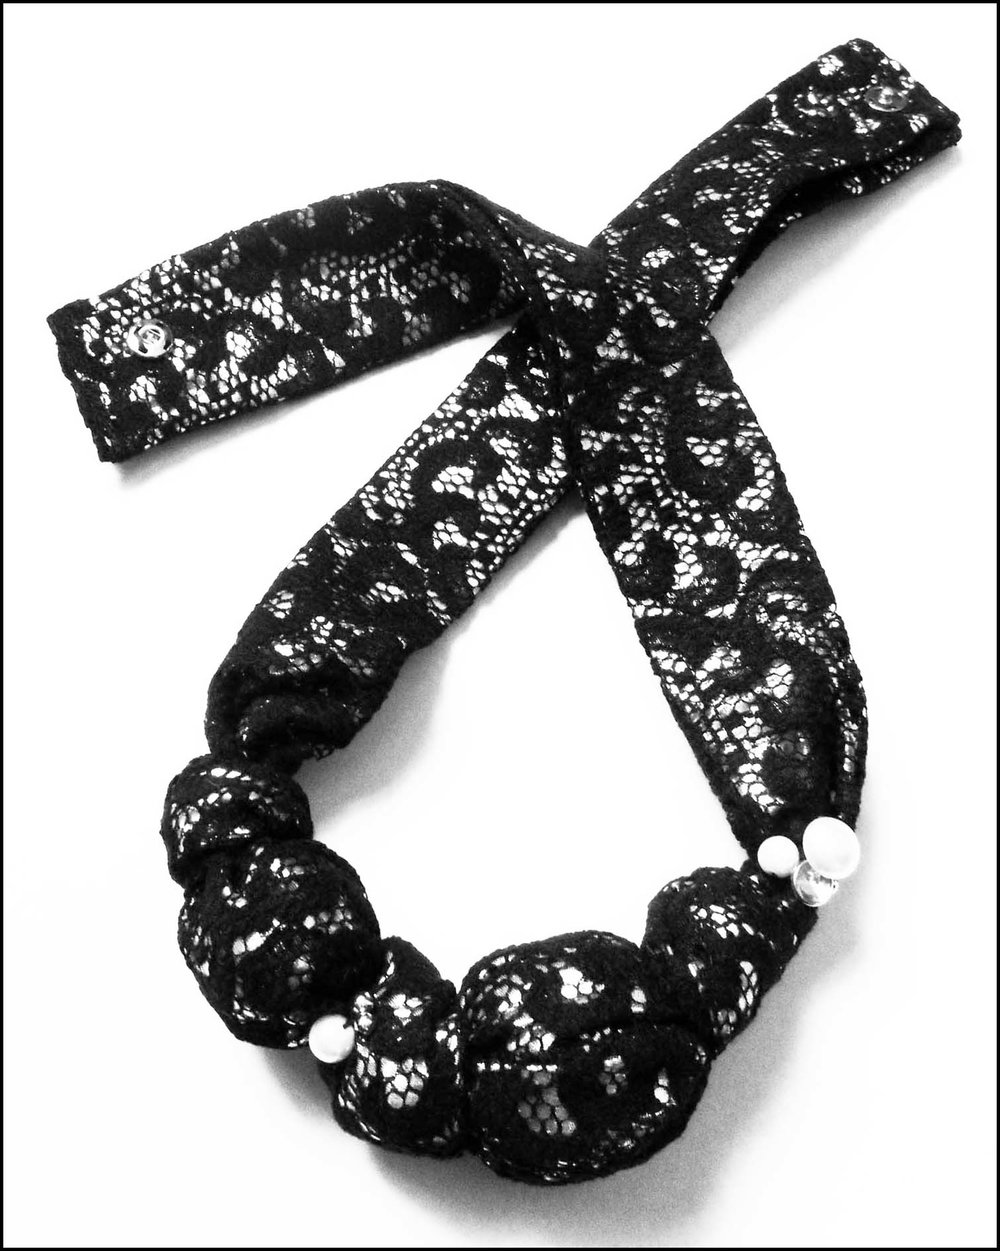 B&W Lace Necklace